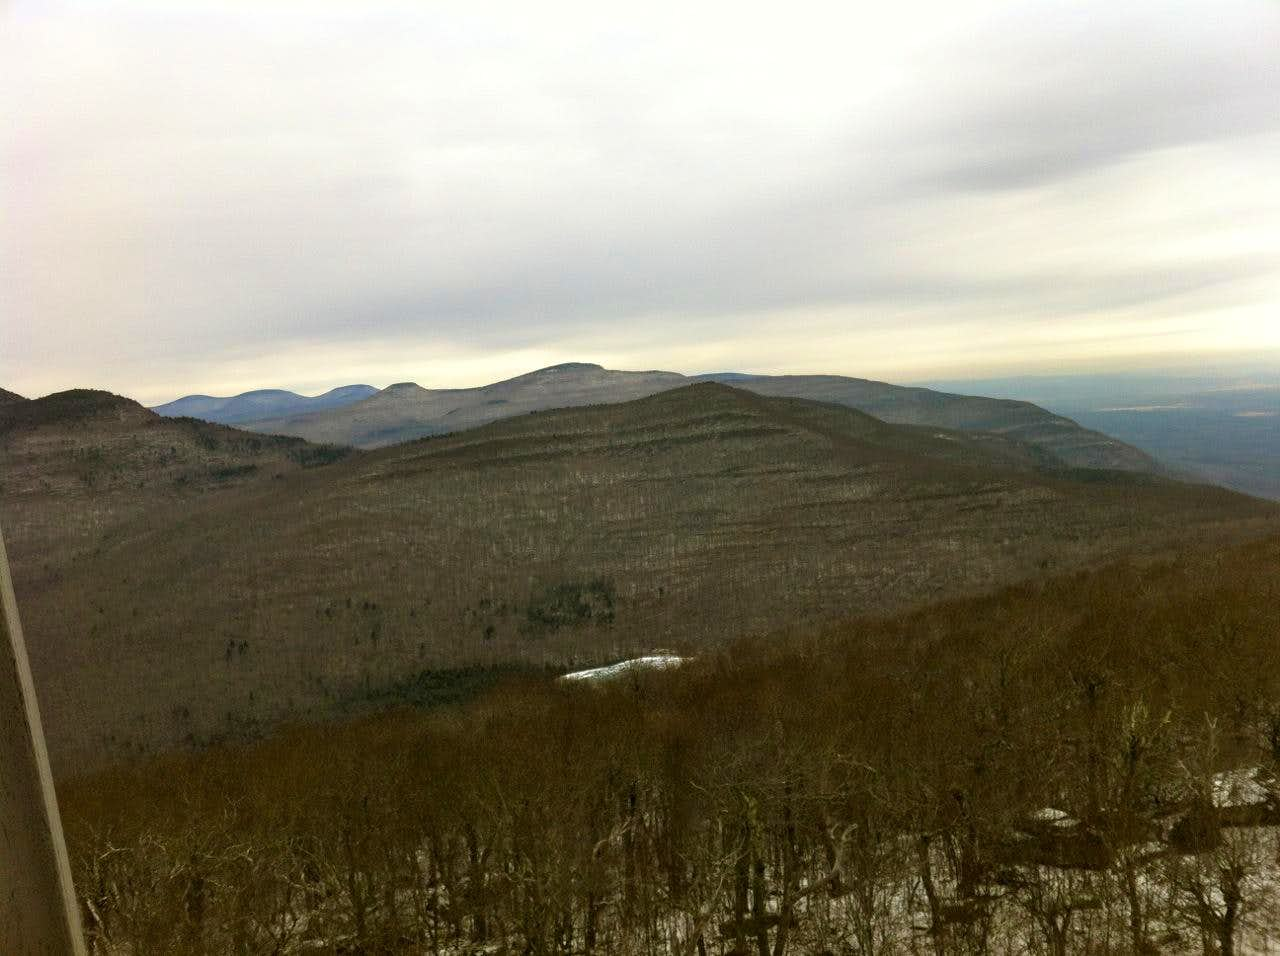 Overlook Mountain - 04 Jan \'12